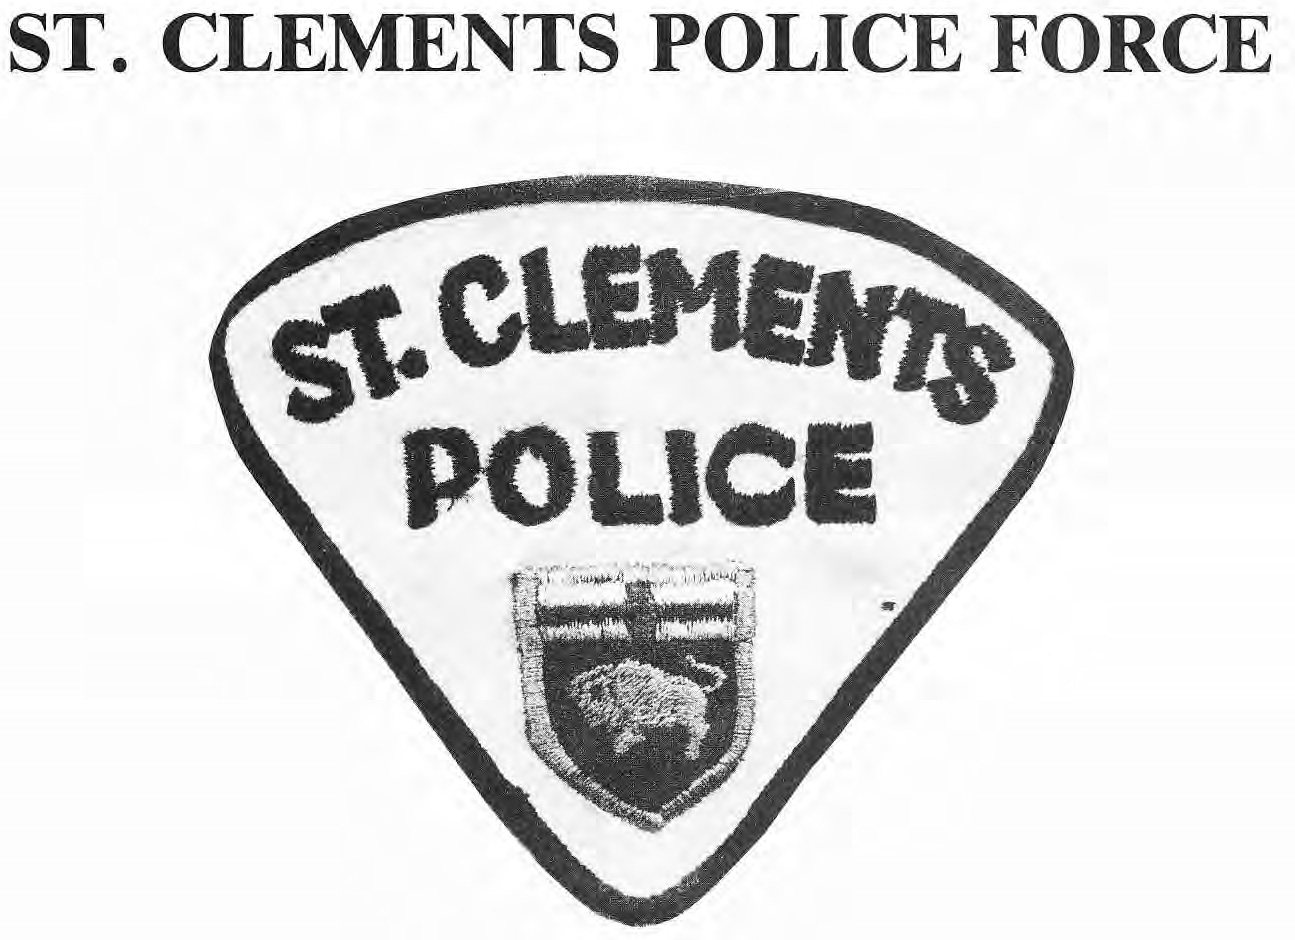 St. Clements Police Crest